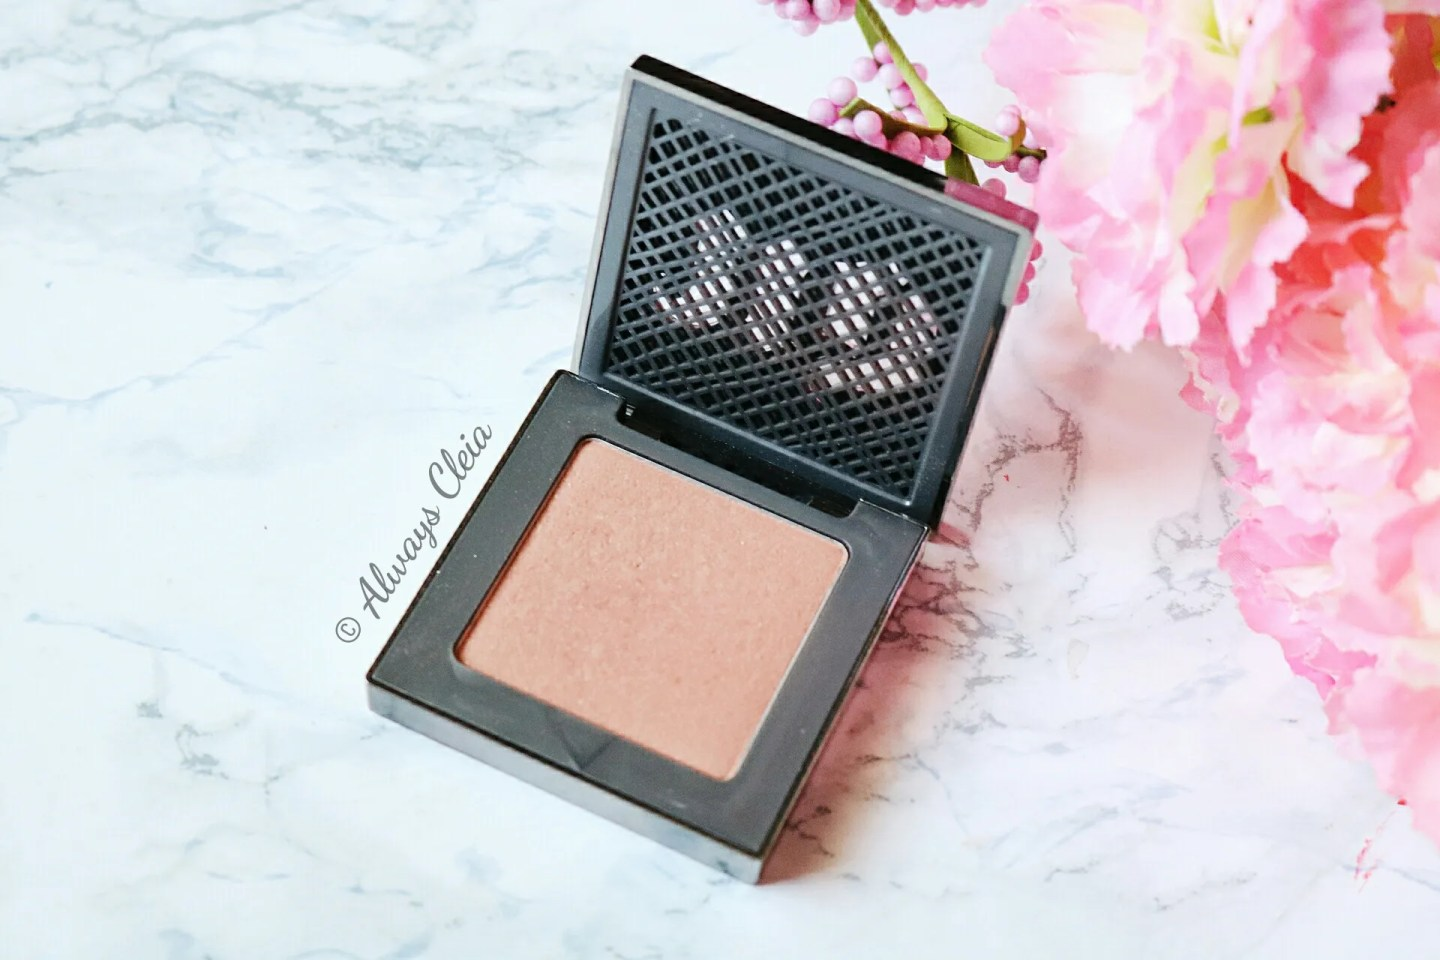 Urban Decay Afterglow Blush | If I Could Only Keep One Makeup Tag